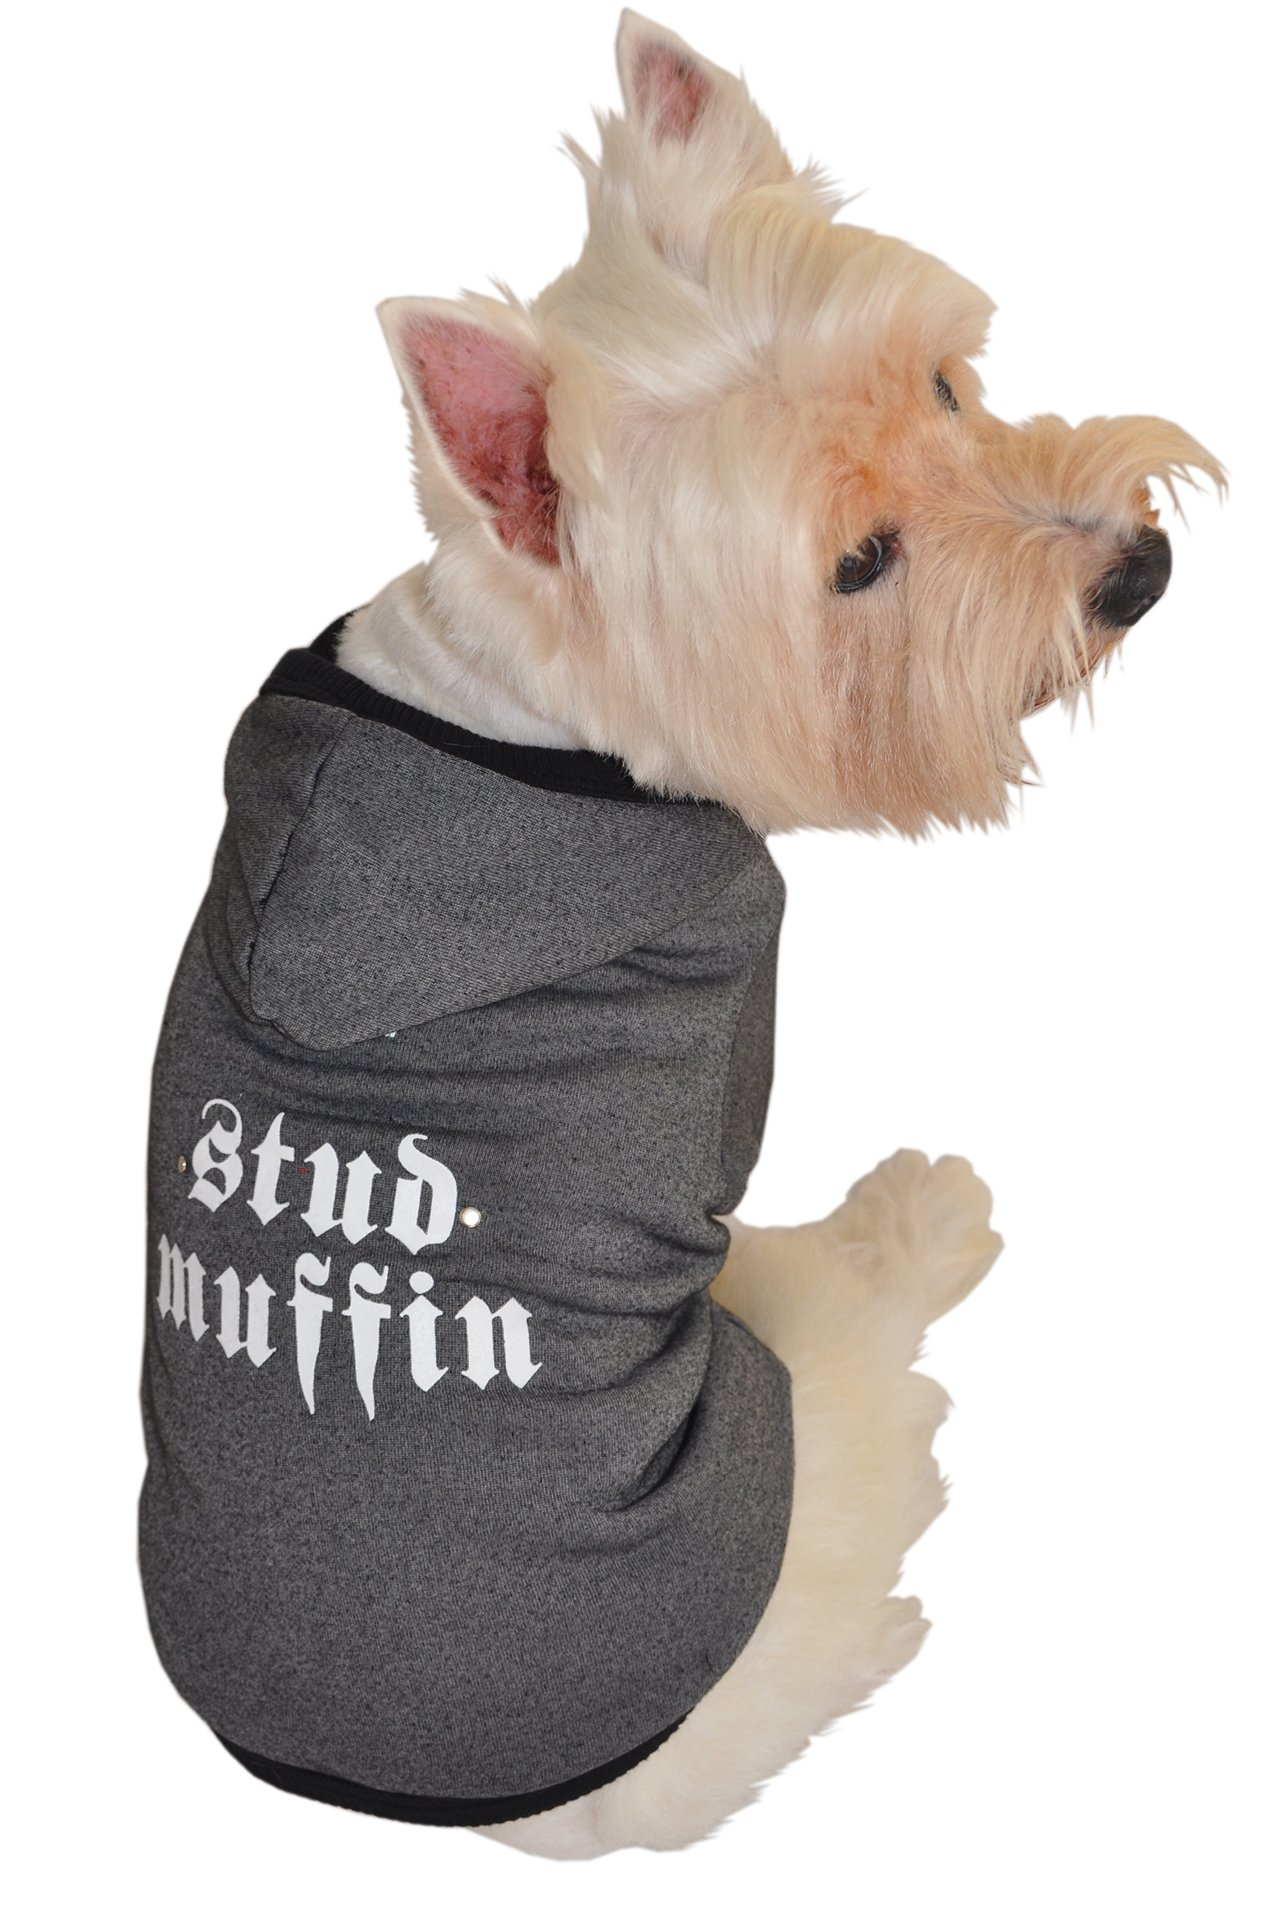 Ruff Ruff and Meow Dog Hoodie, Stud Muffin, Black, Extra-Large